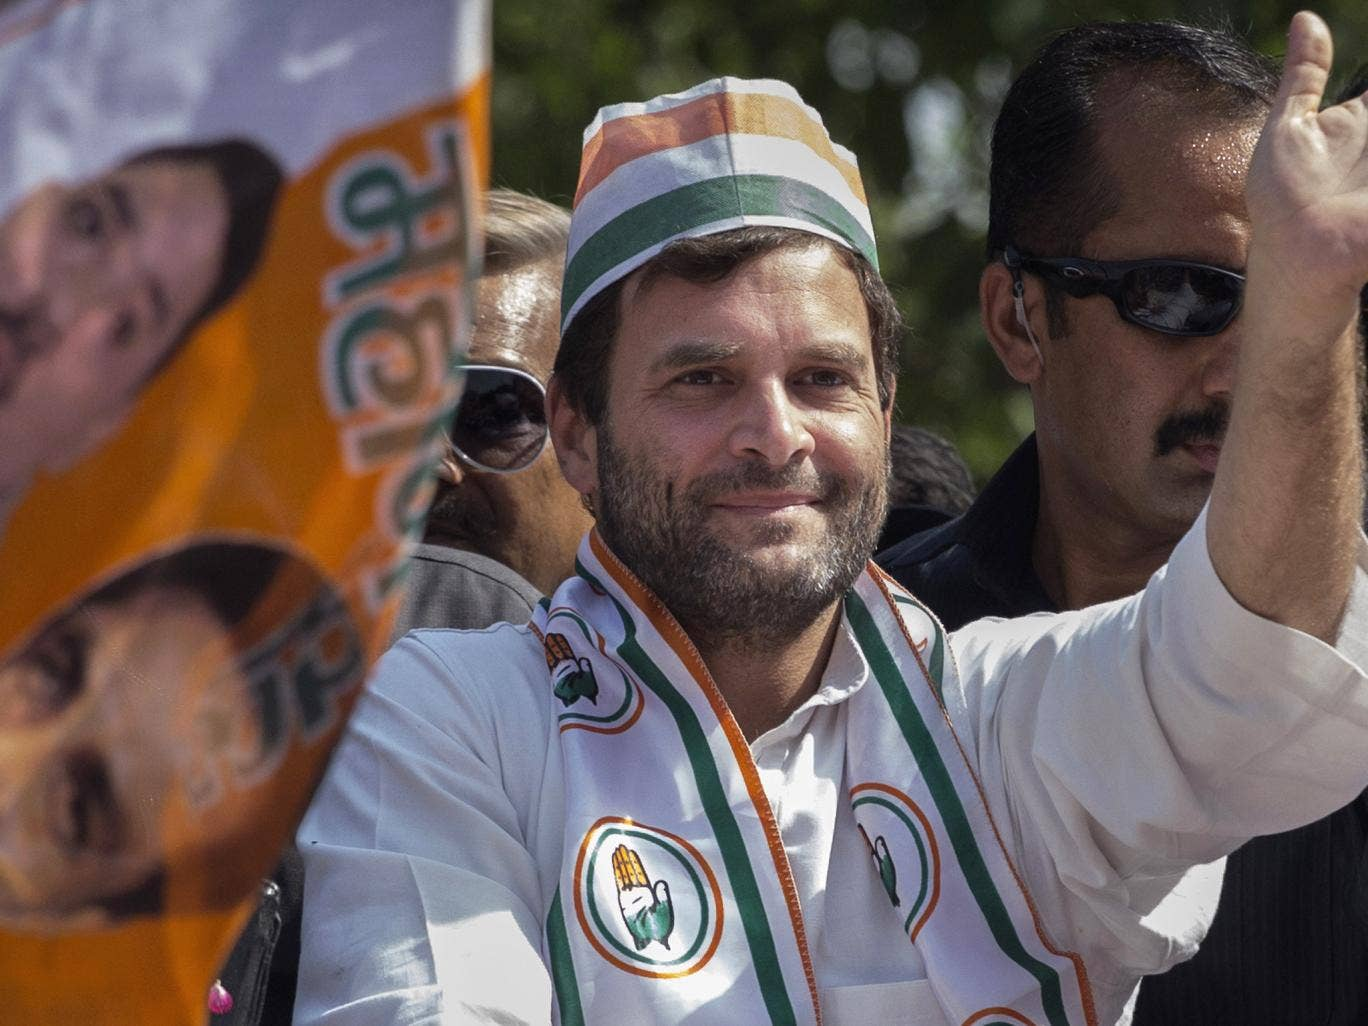 Congress Party's Rahul Gandhi waves to supporters at a recent rally in Varanasi